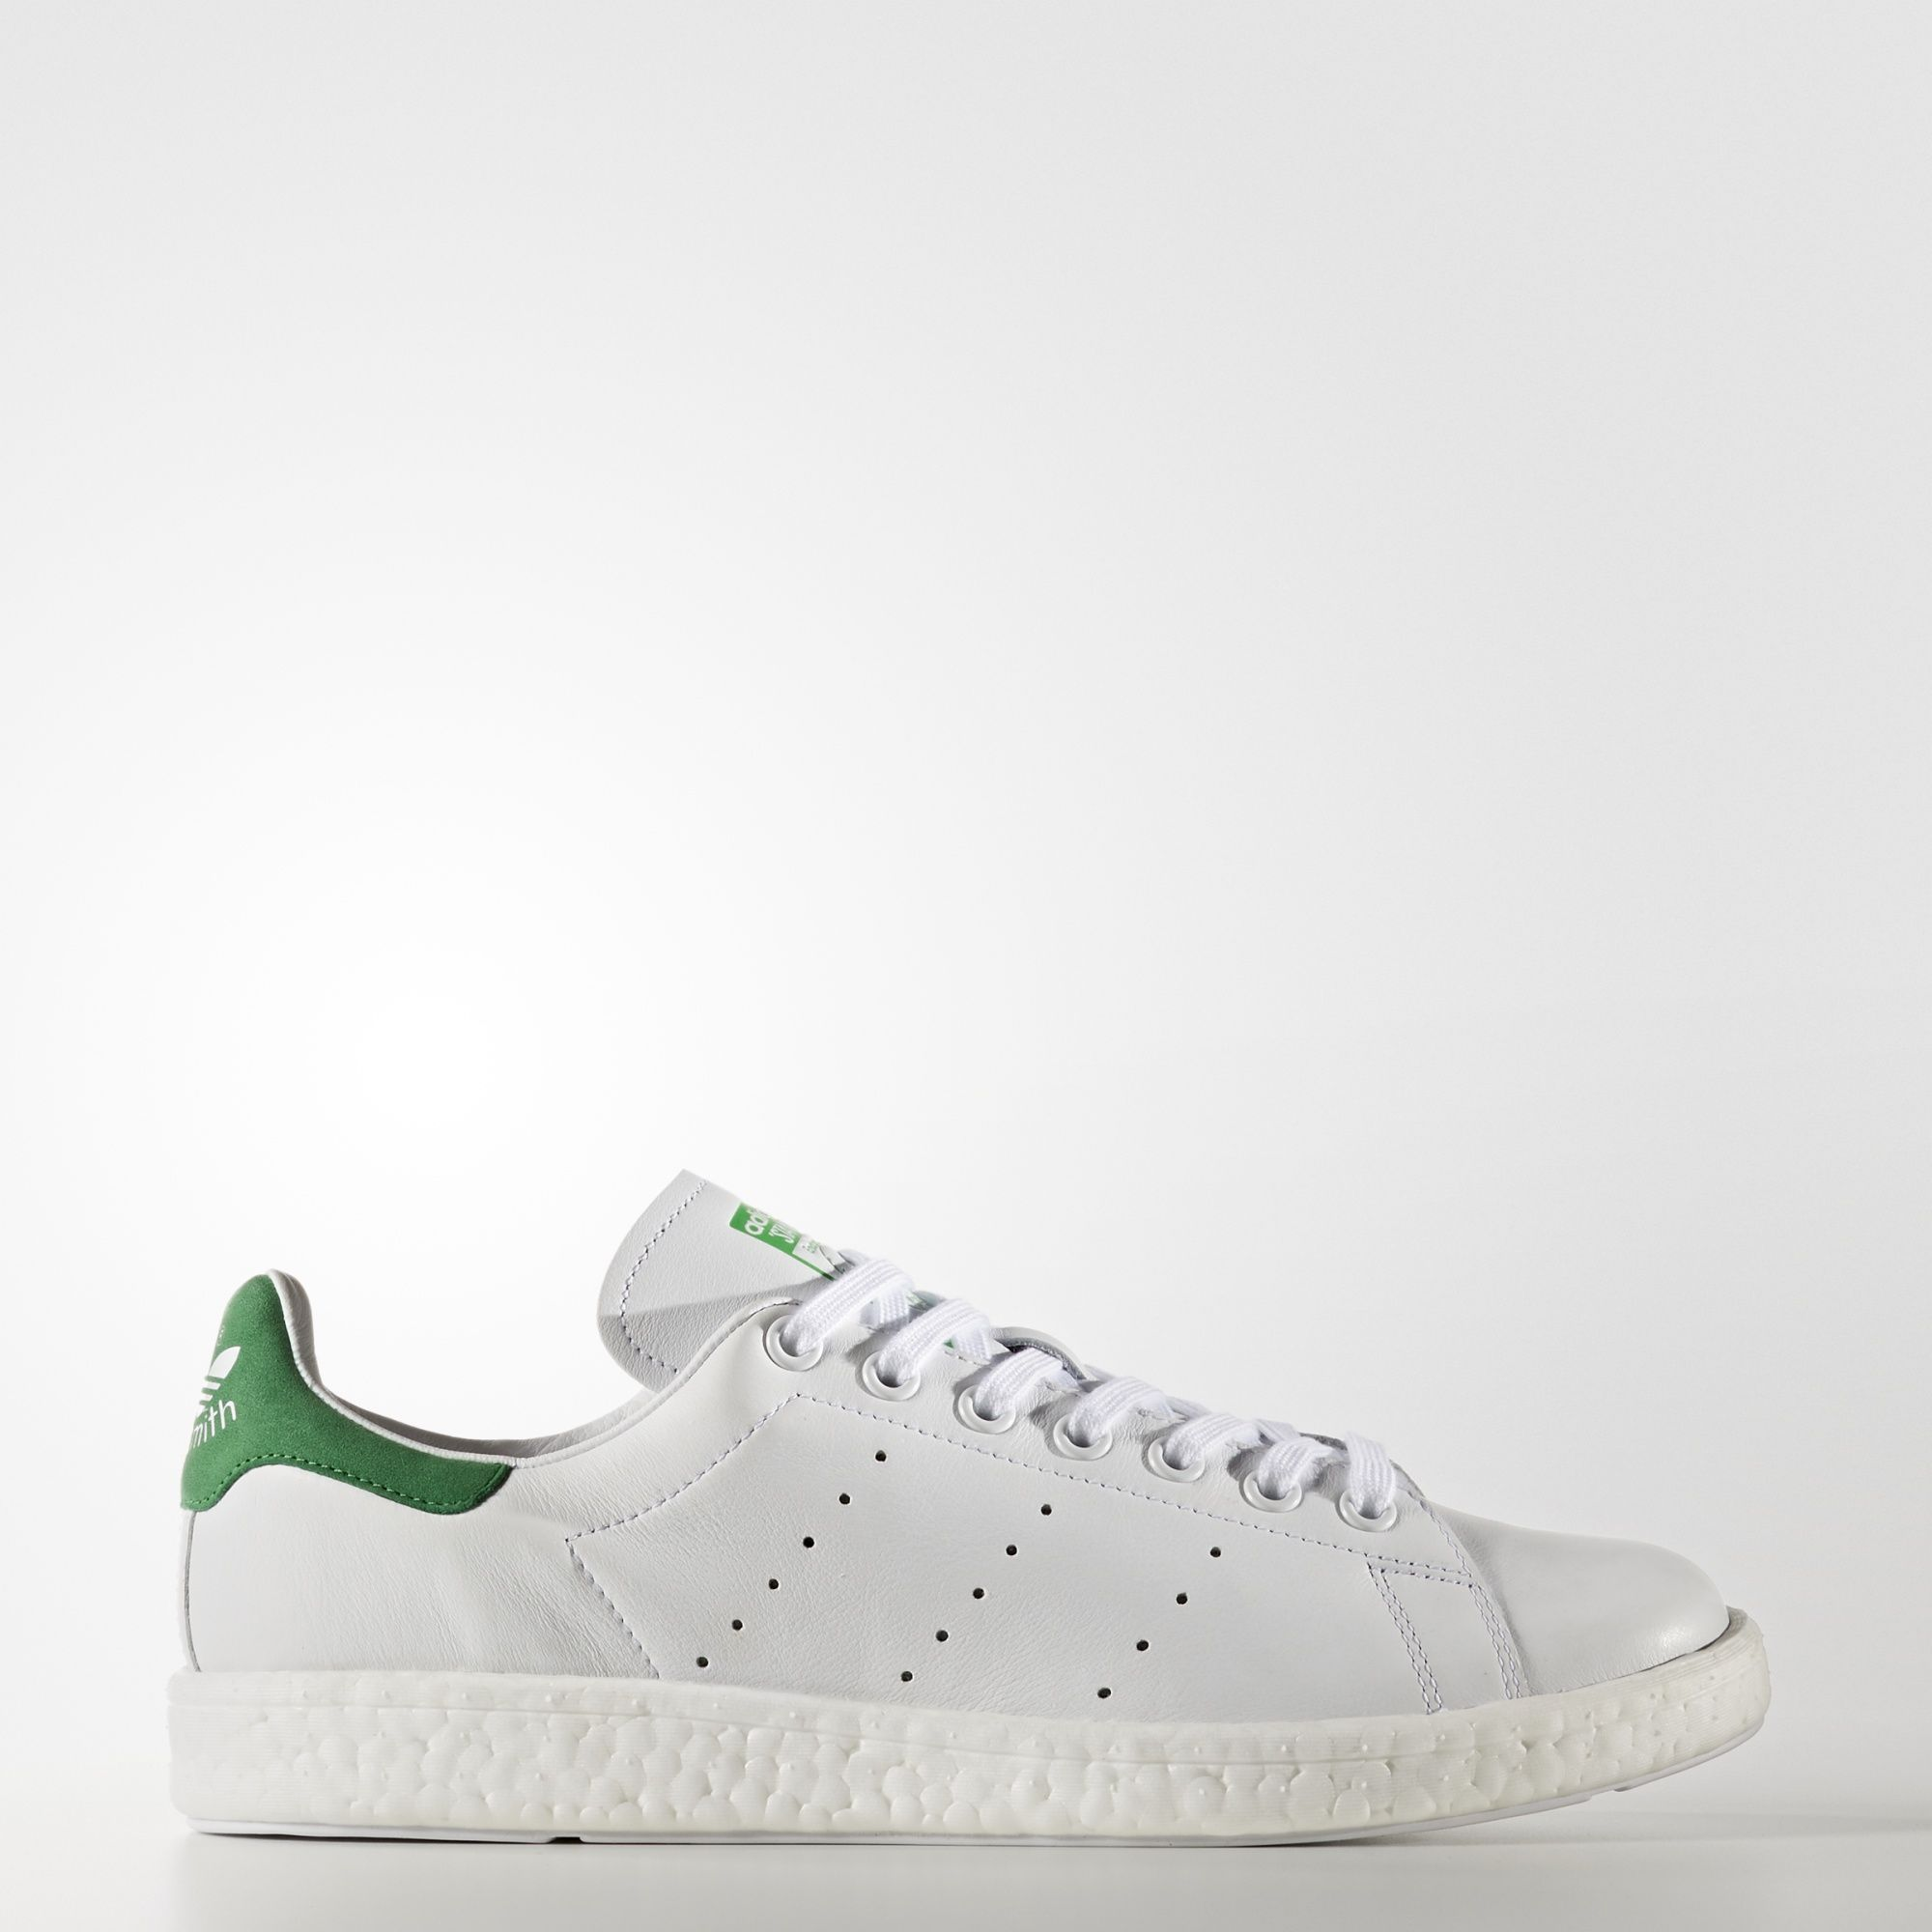 The adidas Stan Smith Boost Will Be Making Its Debut In 2017